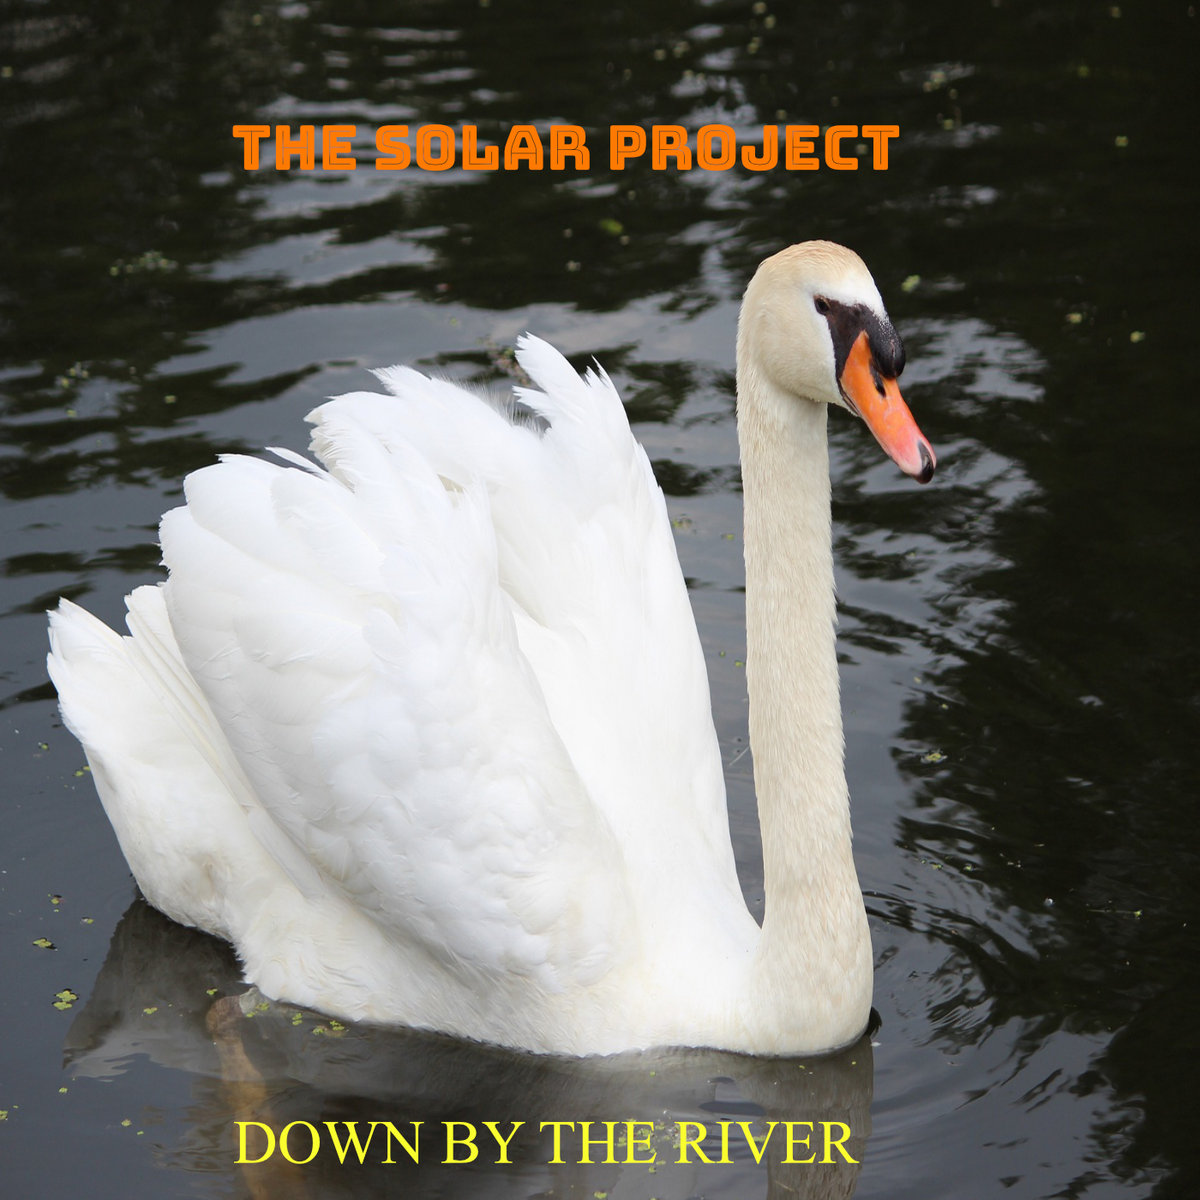 Down By The River by The Solar Project